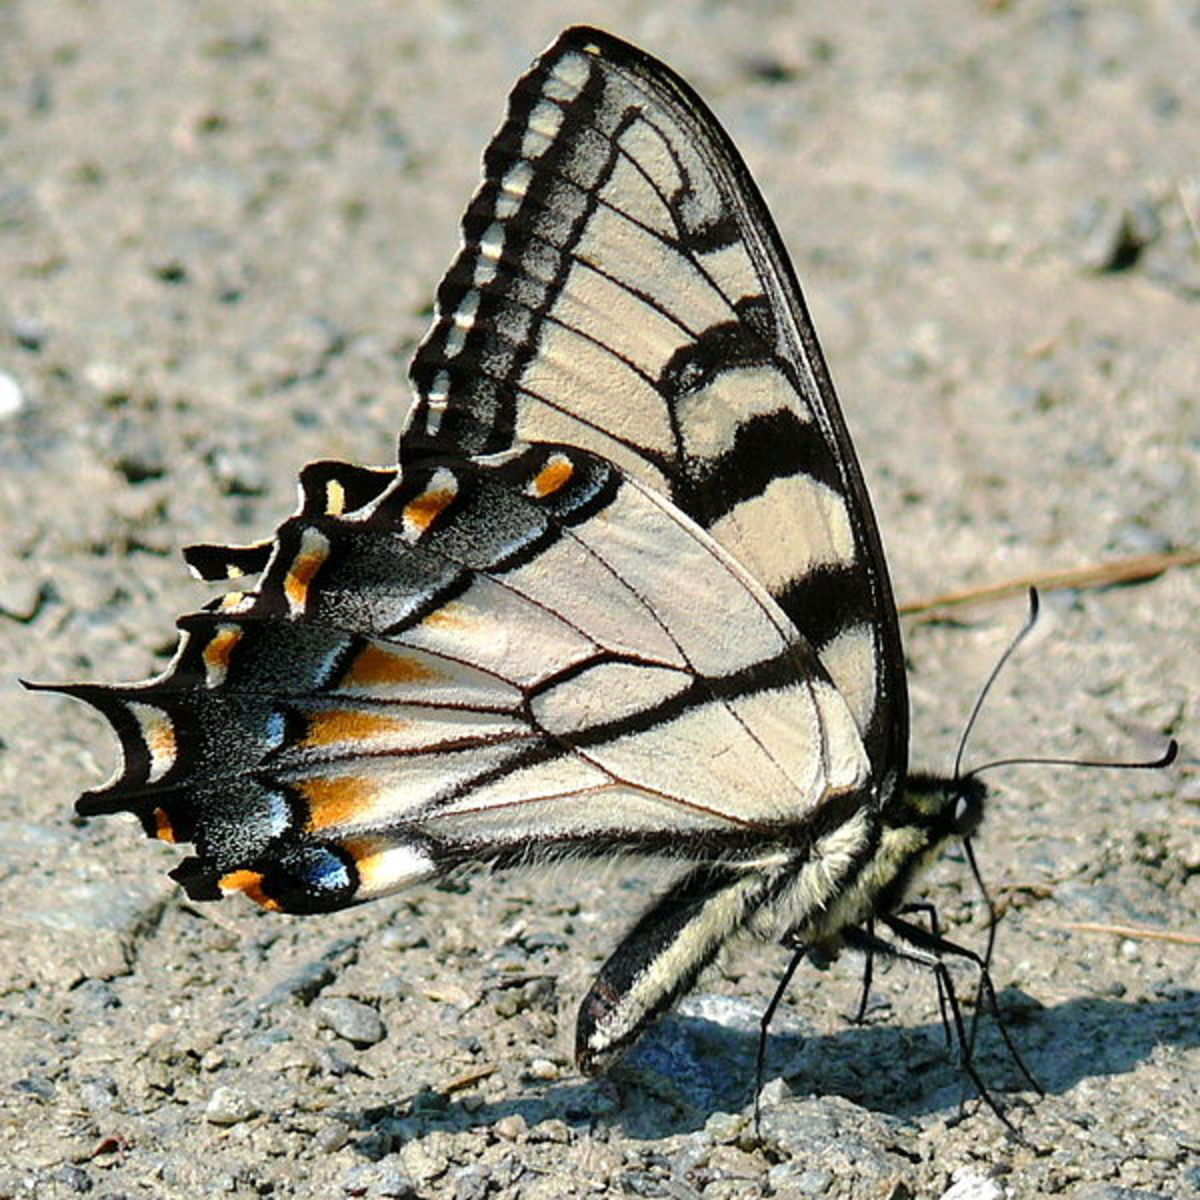 I have seen the Eastern Tiger Swallowtail butterfly come to my garden for the nectar of purple phlox flowers.  They are so beautiful.